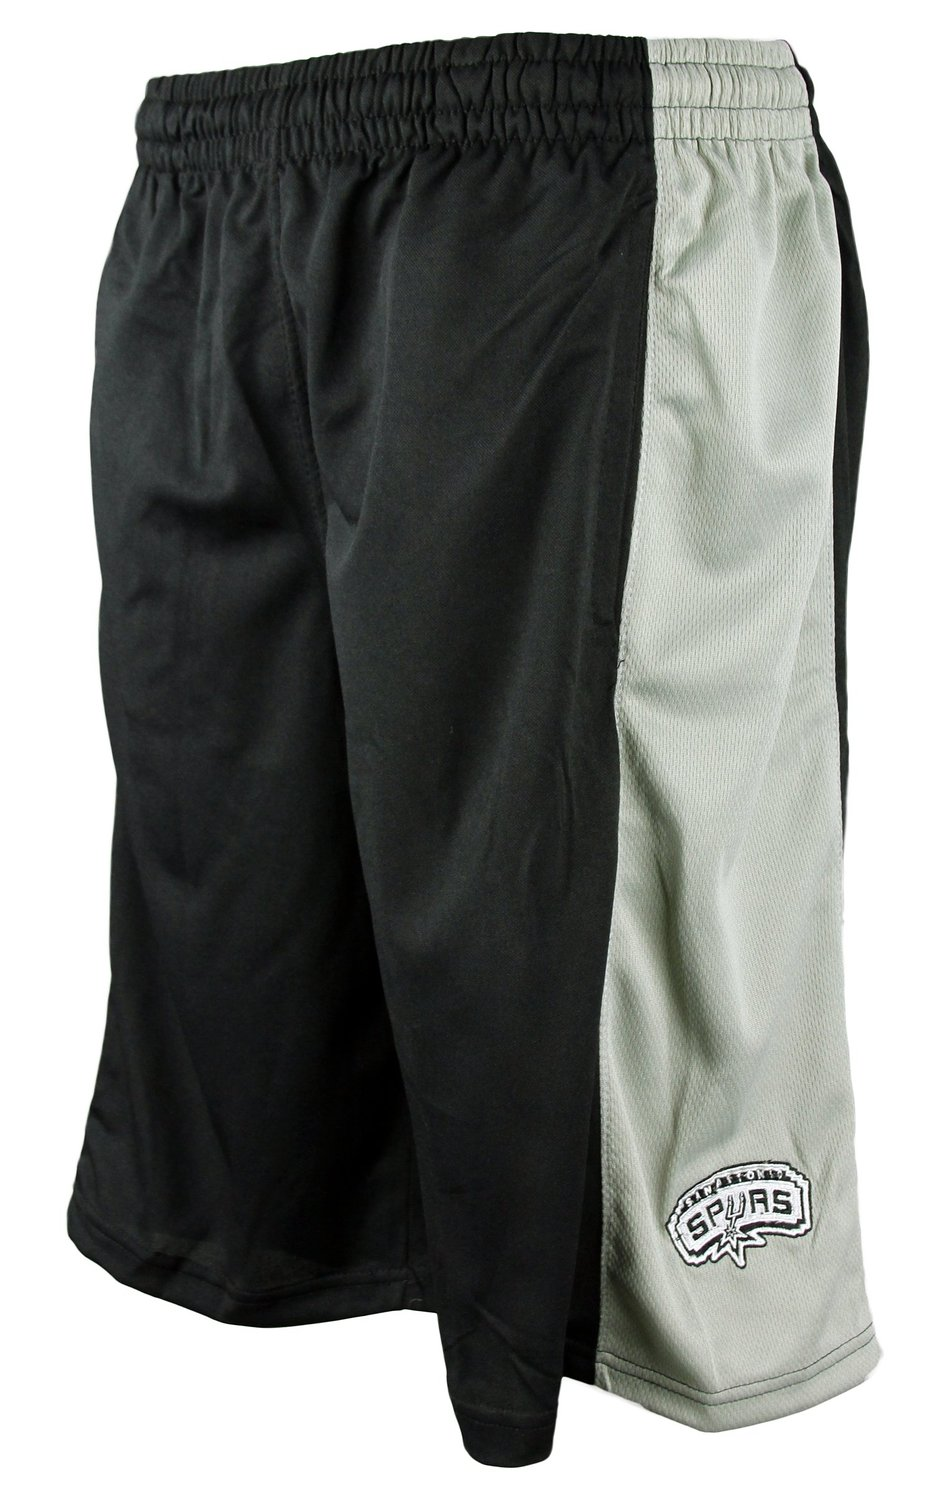 3791a5789 Get Quotations · San Antonio Spurs NBA Zipway Black Microfiber Shorts